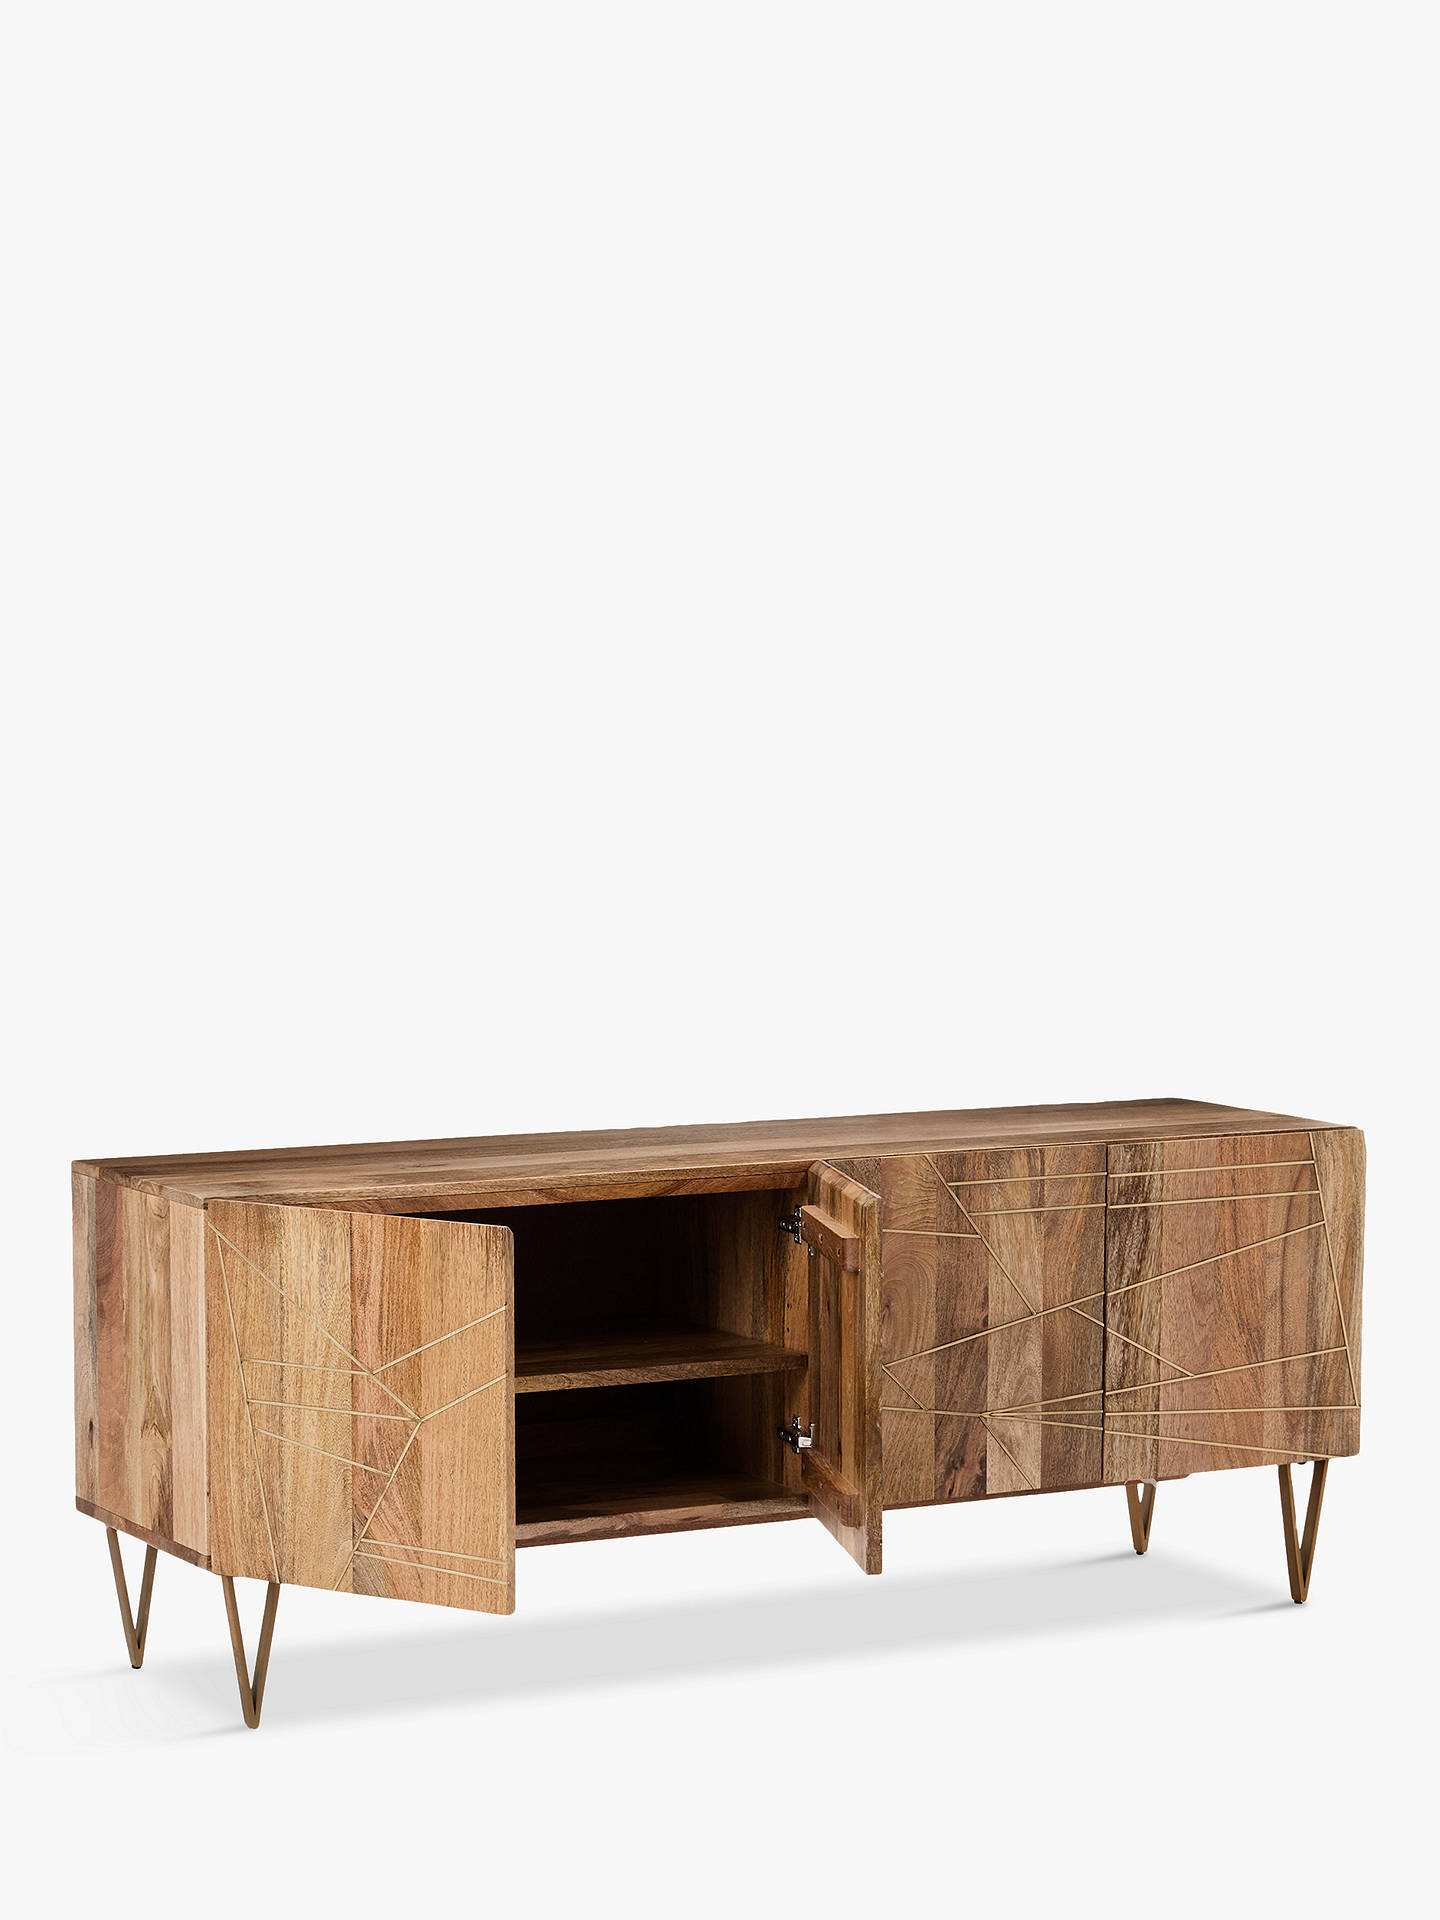 Roar Rabbit For West Elm Geo Console Table At John Lewis